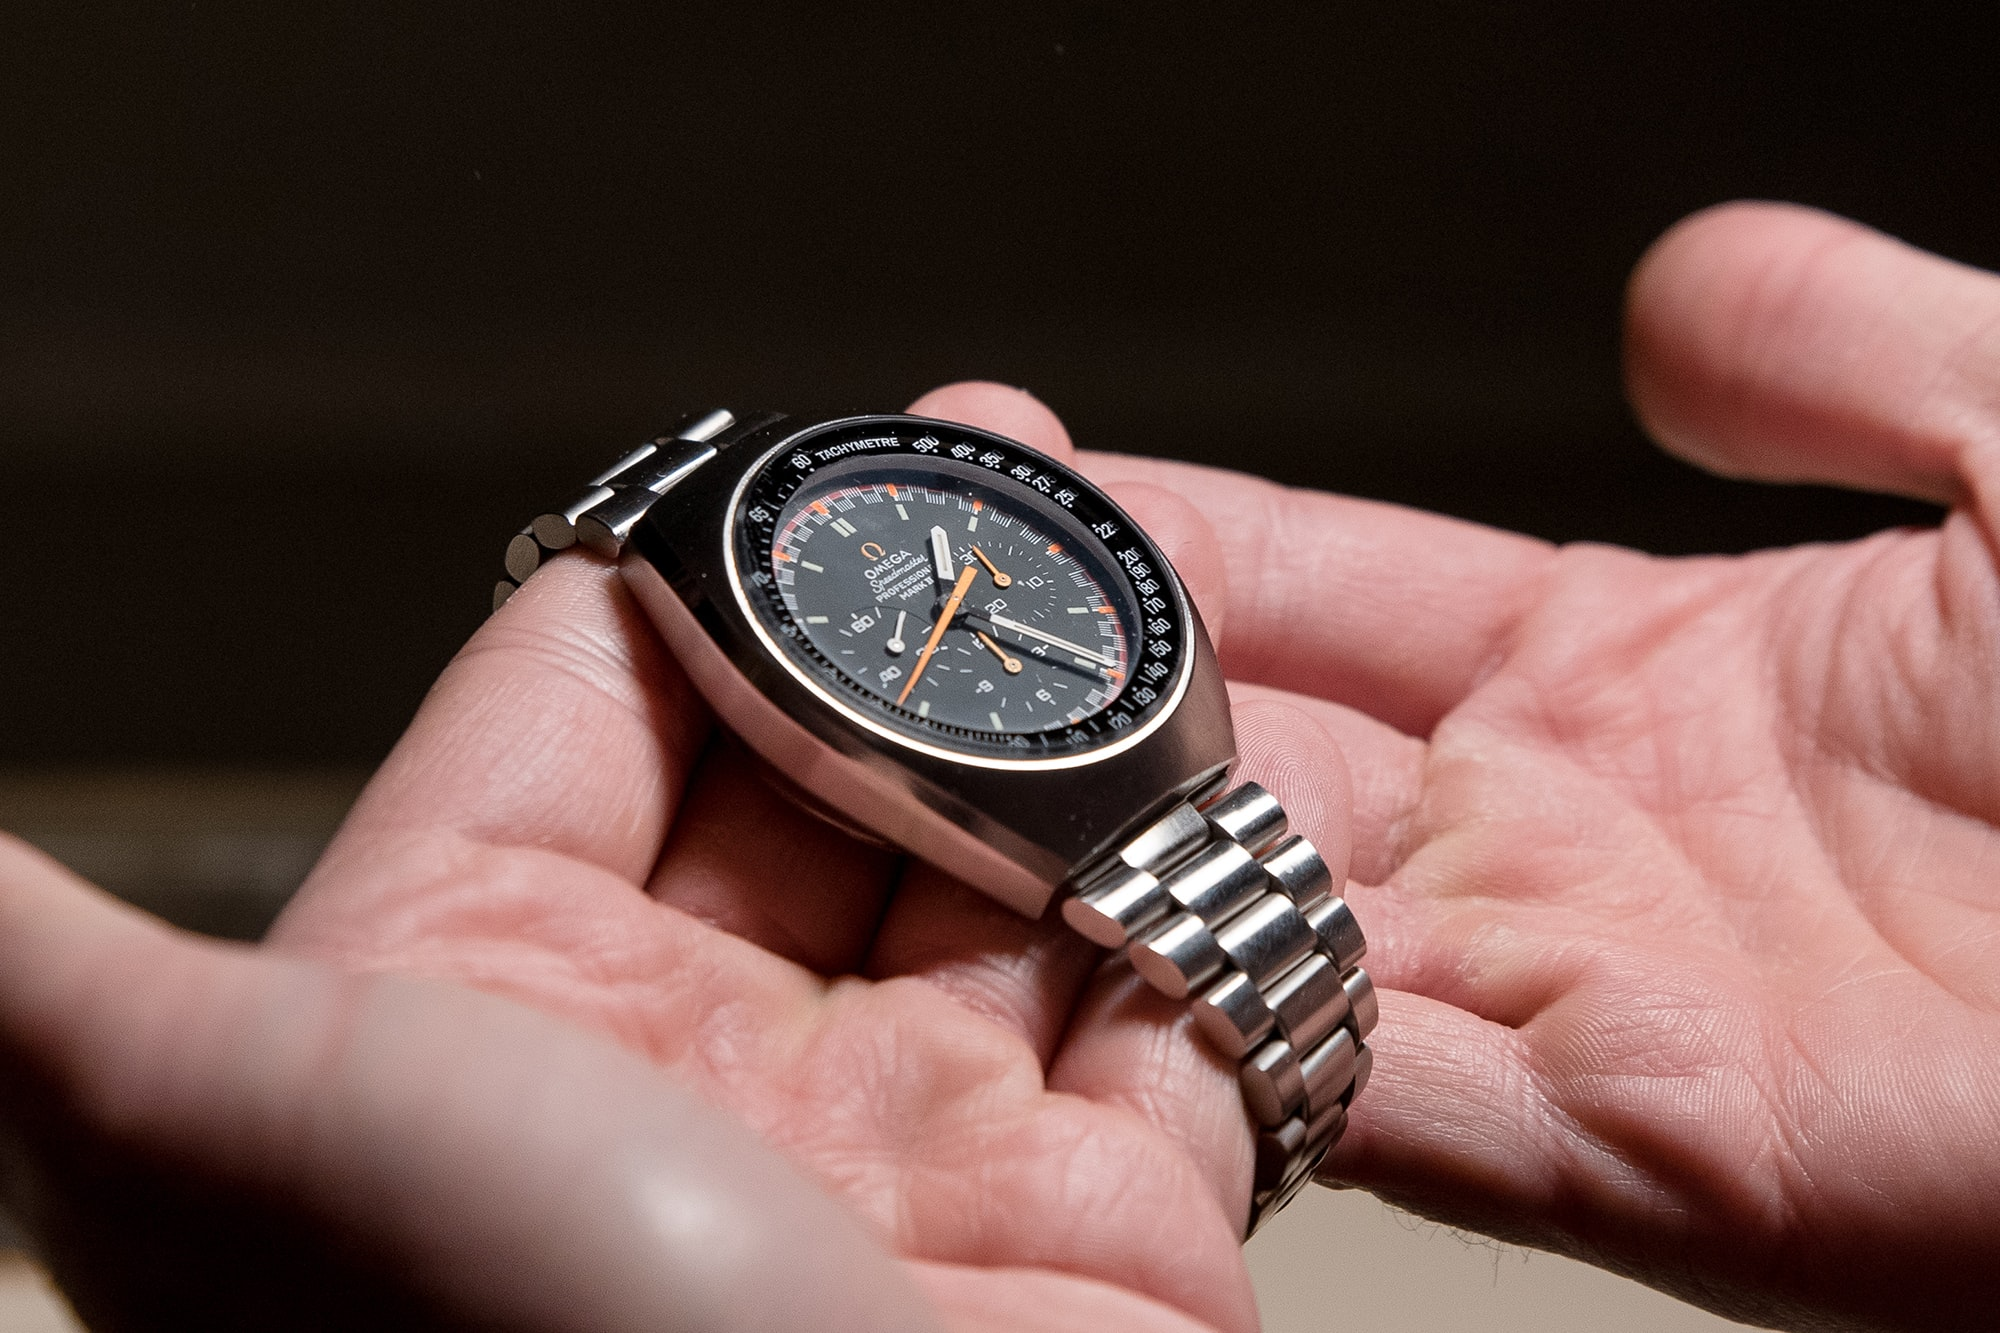 Photo Report: HODINKEE And Omega Celebrate The 60th Anniversary Of The Speedmaster Photo Report: HODINKEE And Omega Celebrate The 60th Anniversary Of The Speedmaster  20170221 OmegaSpeedmaster60th 131